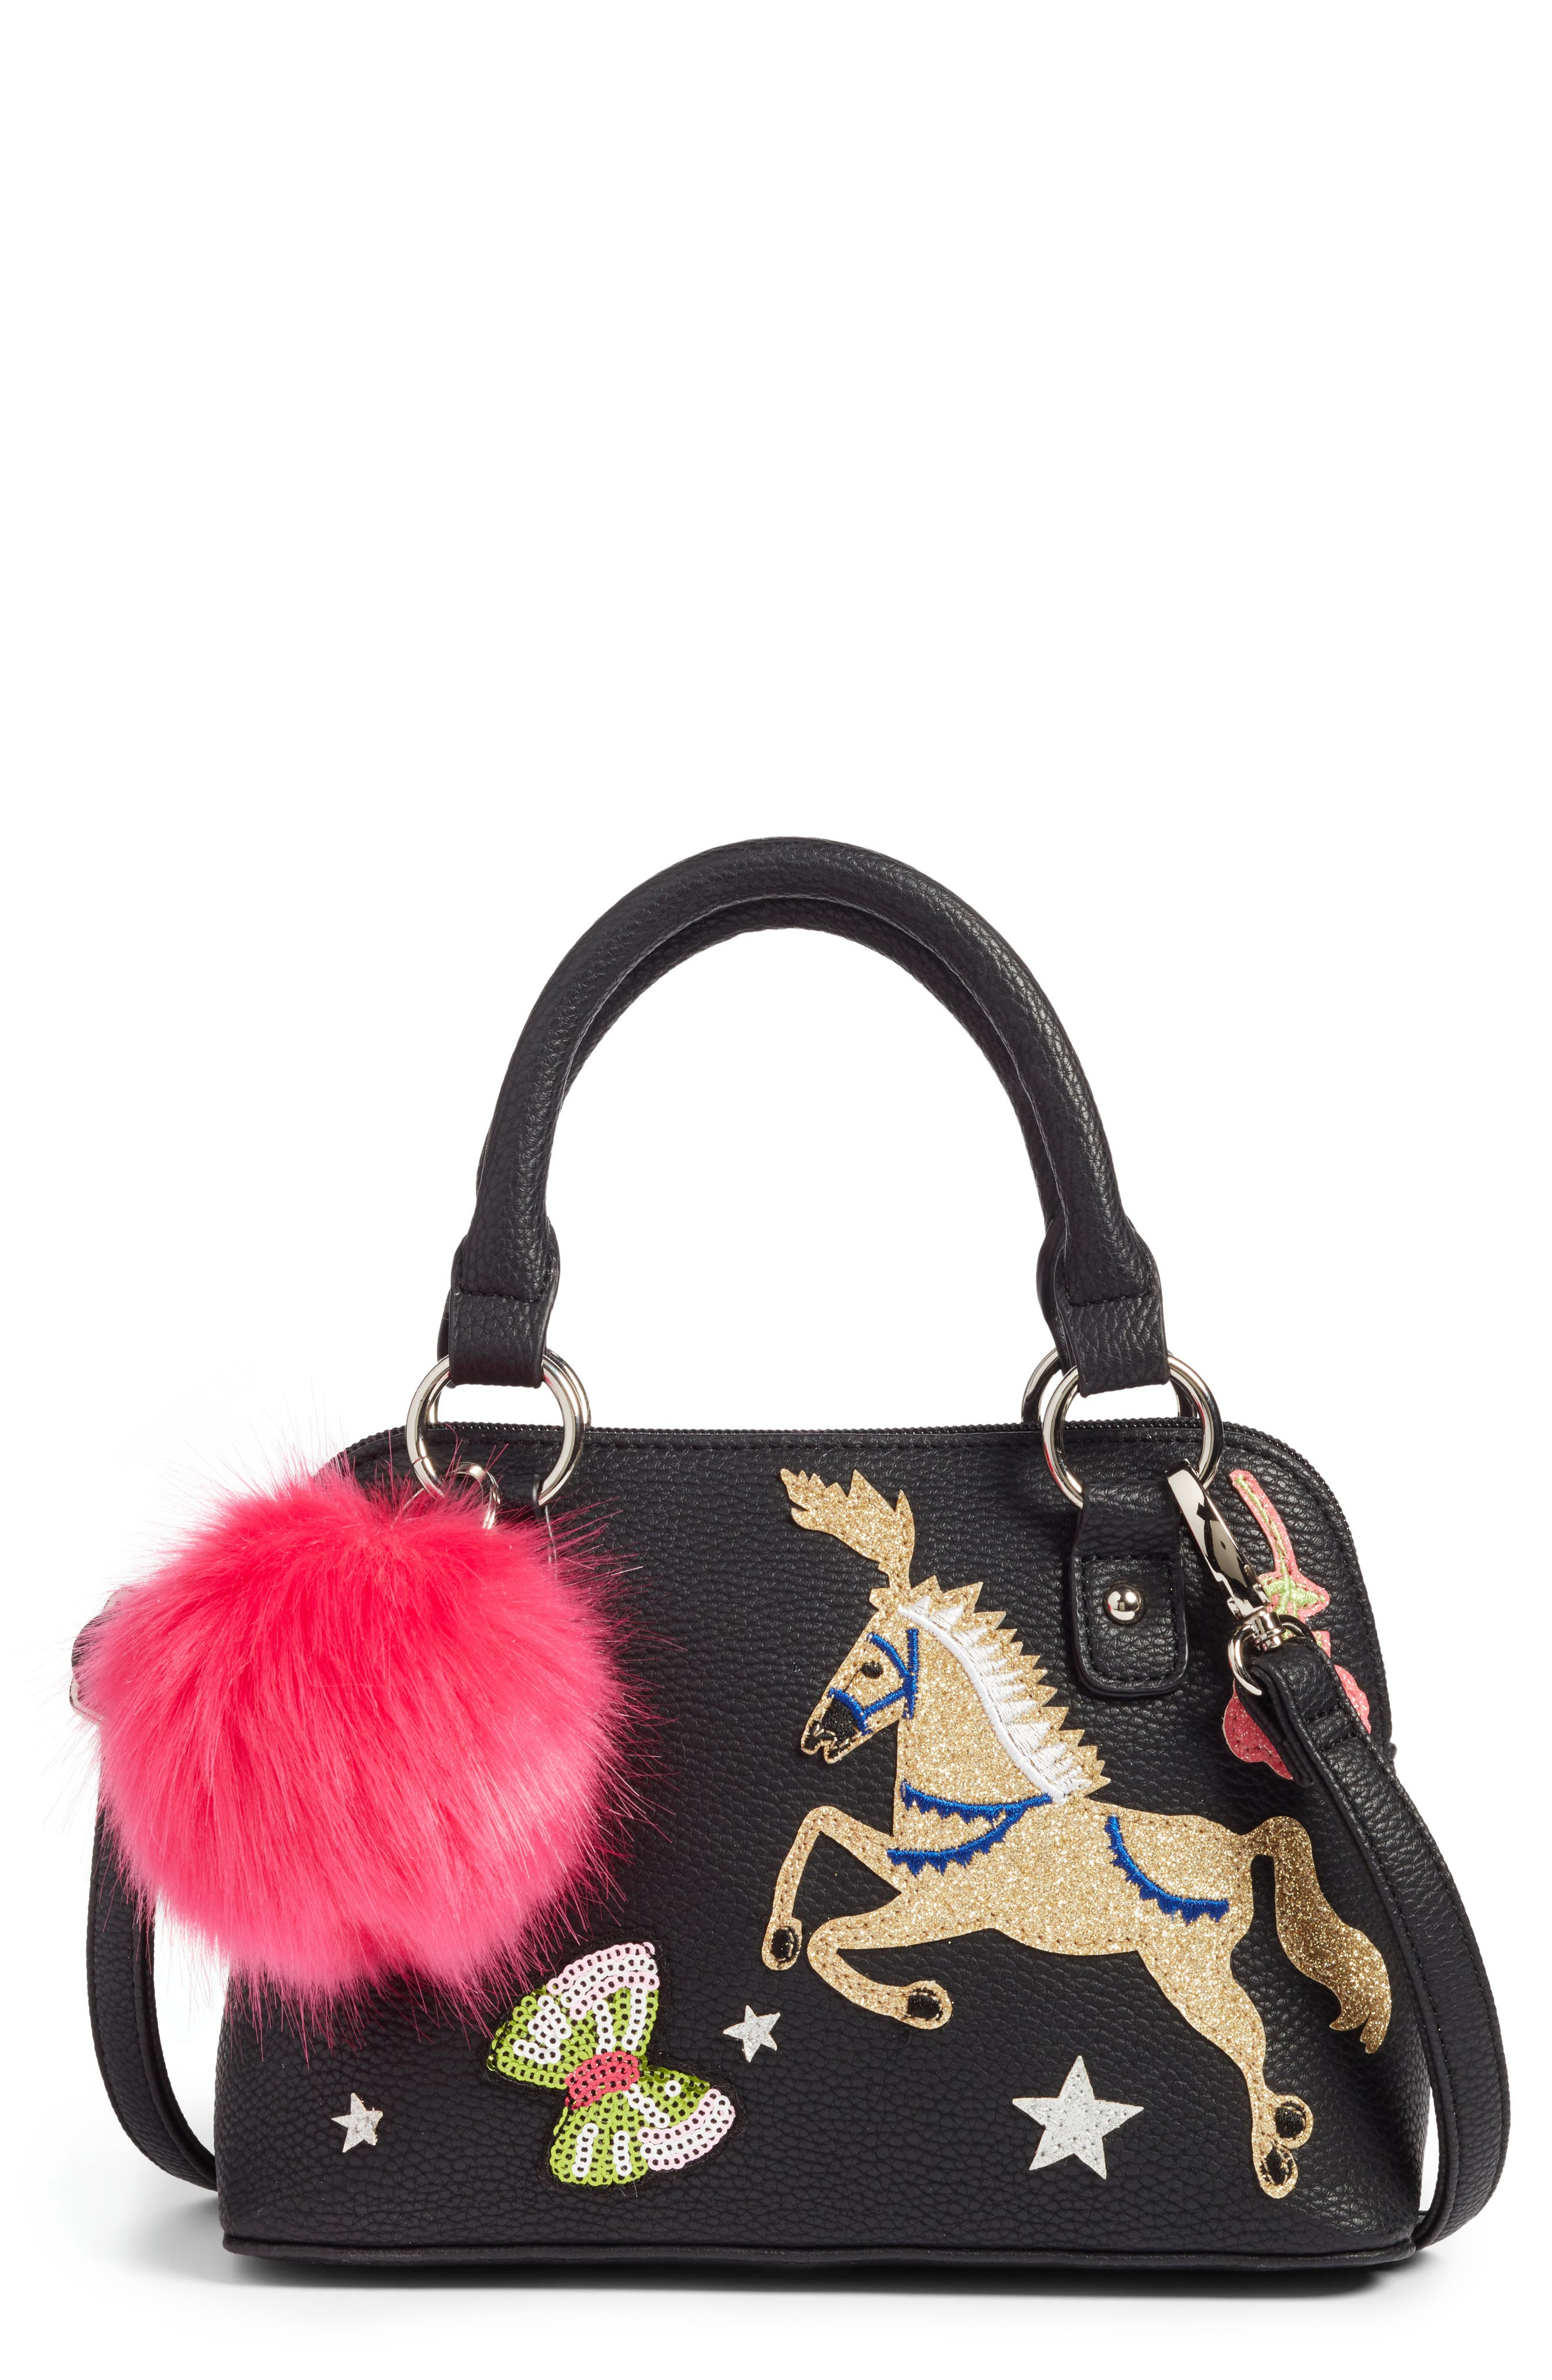 Alternate Image 1 Selected - Hannah Banana Appliqué Handbag (Girls)